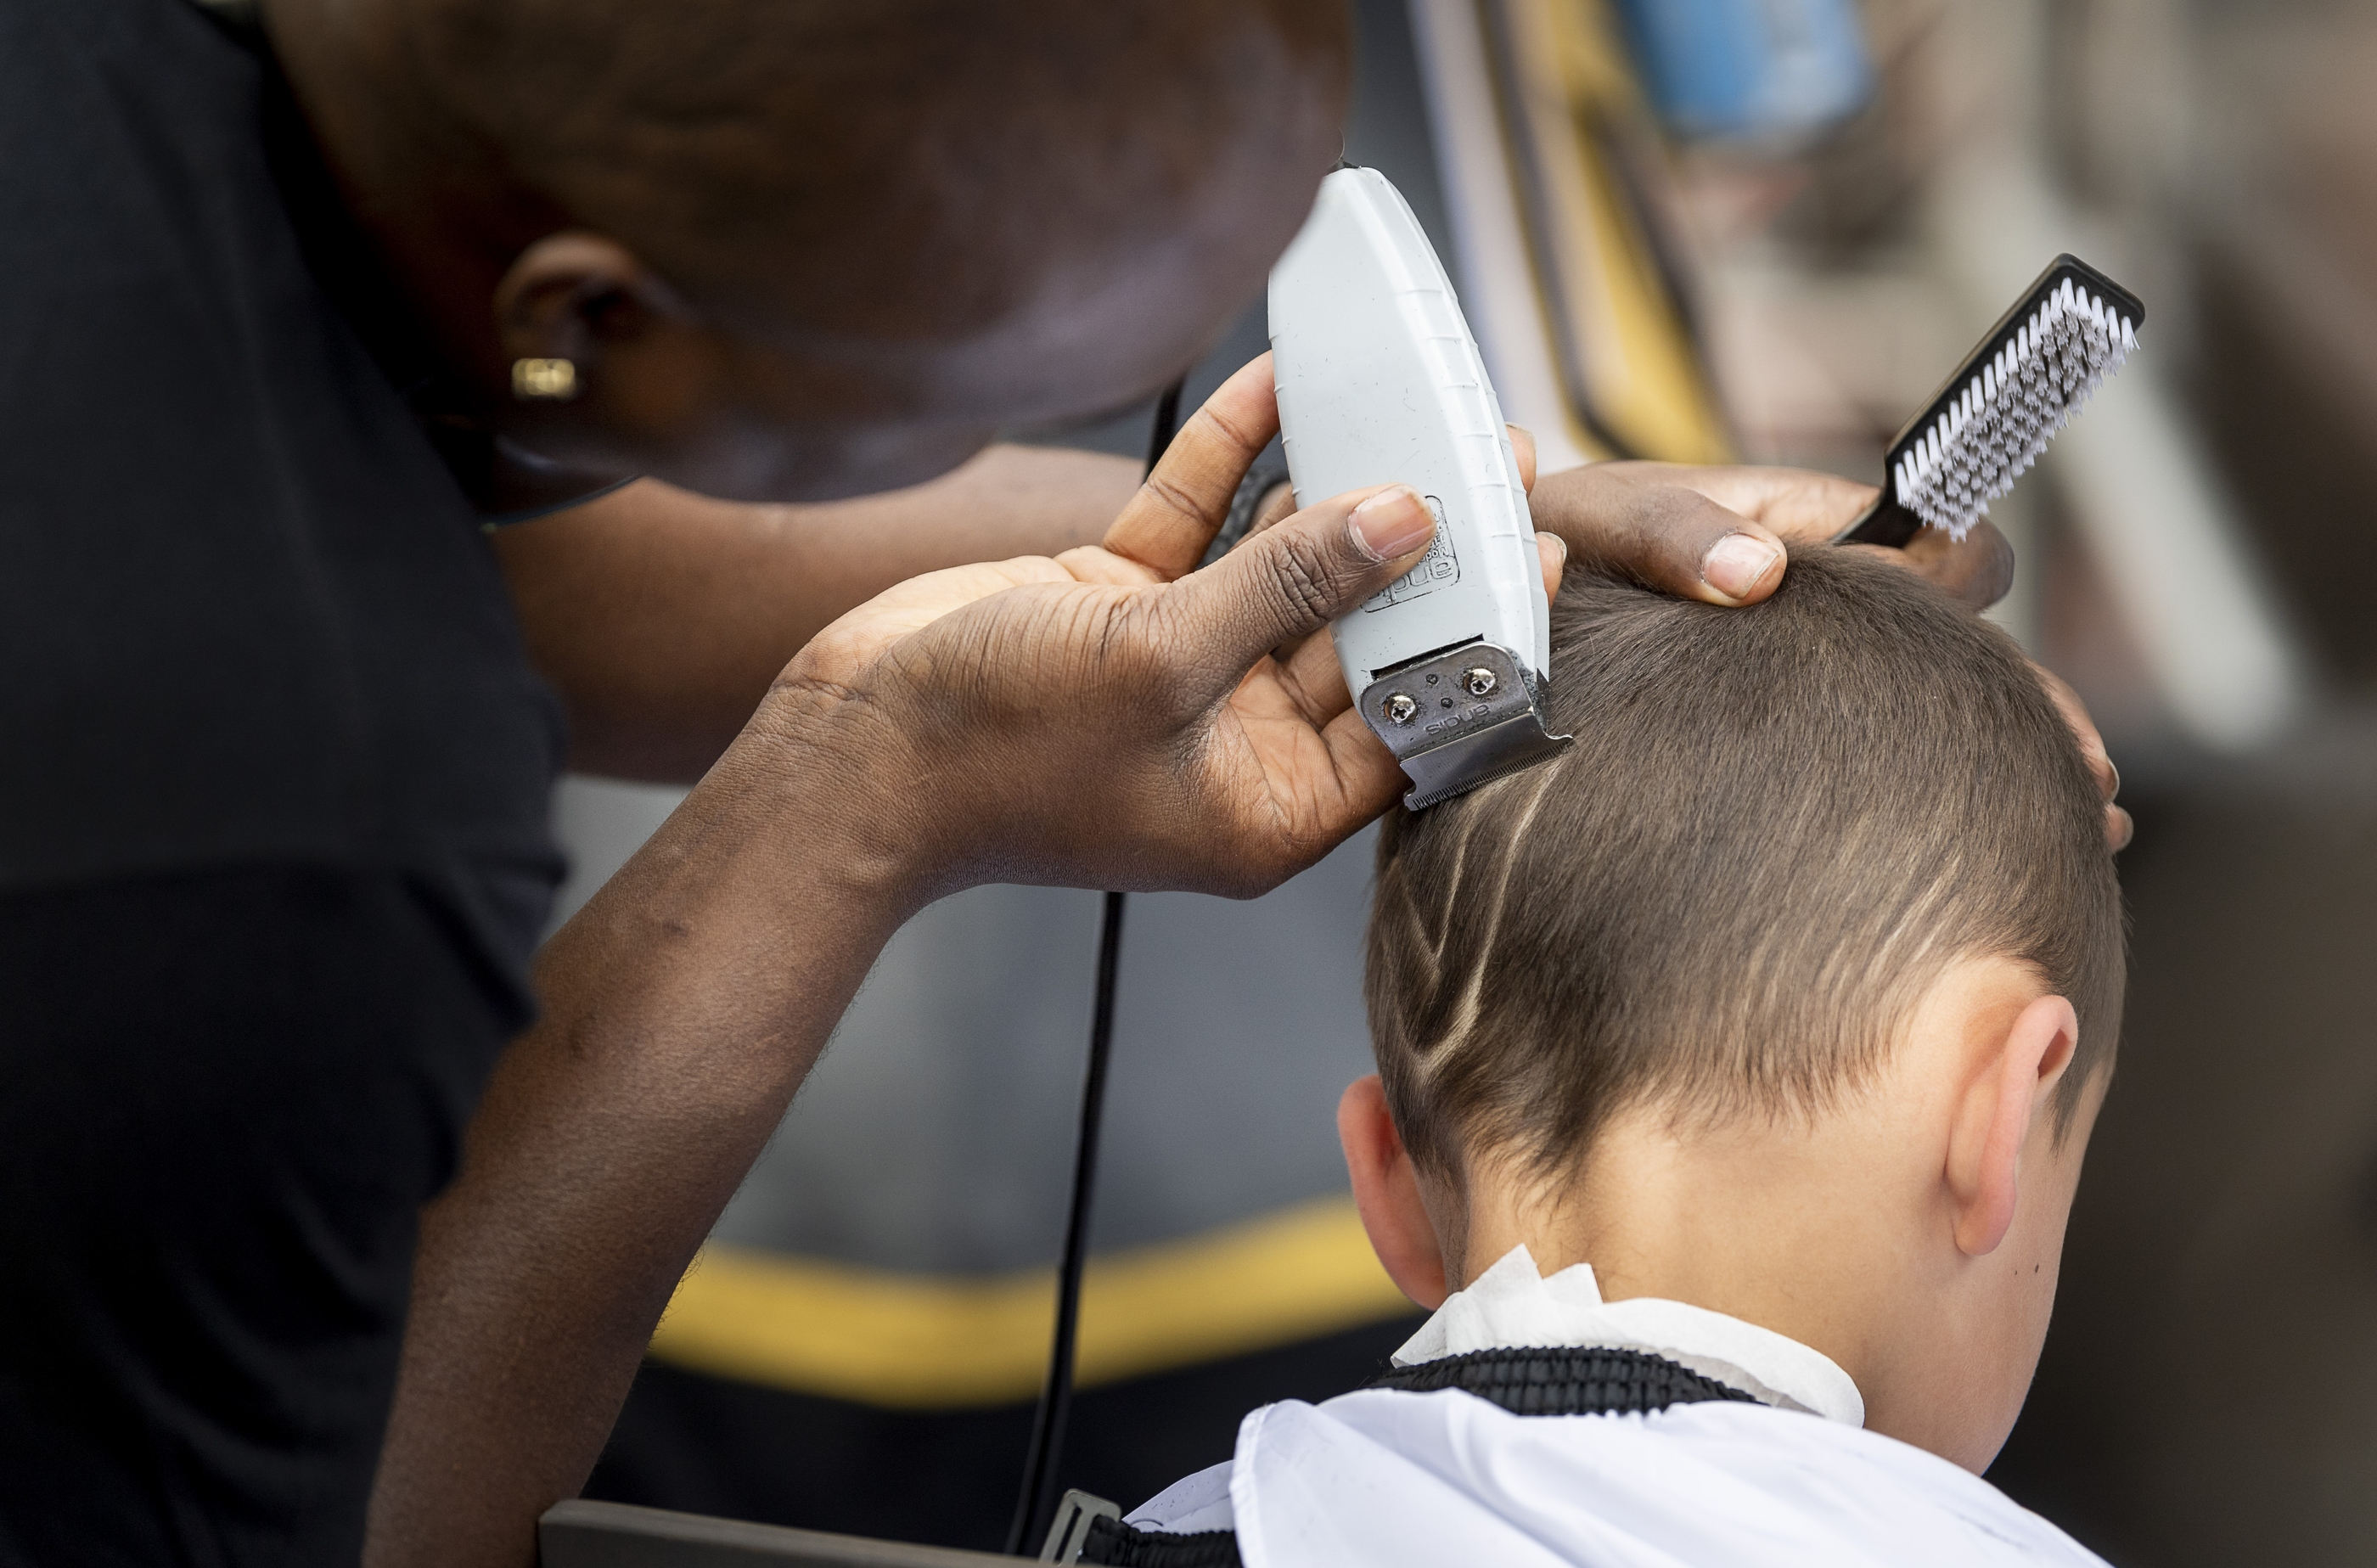 A youngster gets an appropriate hairstyle in the pre-game celebration in Toshiba Plaza as the Vegas Golden Knights prepare to meet the Los Angeles Kings in the first quarterfinal game of the NHL Stanley Cup Playoffs at T-Mobile Arena in Las Vegas on Wednesday, April 11, 2018.  CREDIT: Mark Damon/Las Vegas News Bureau